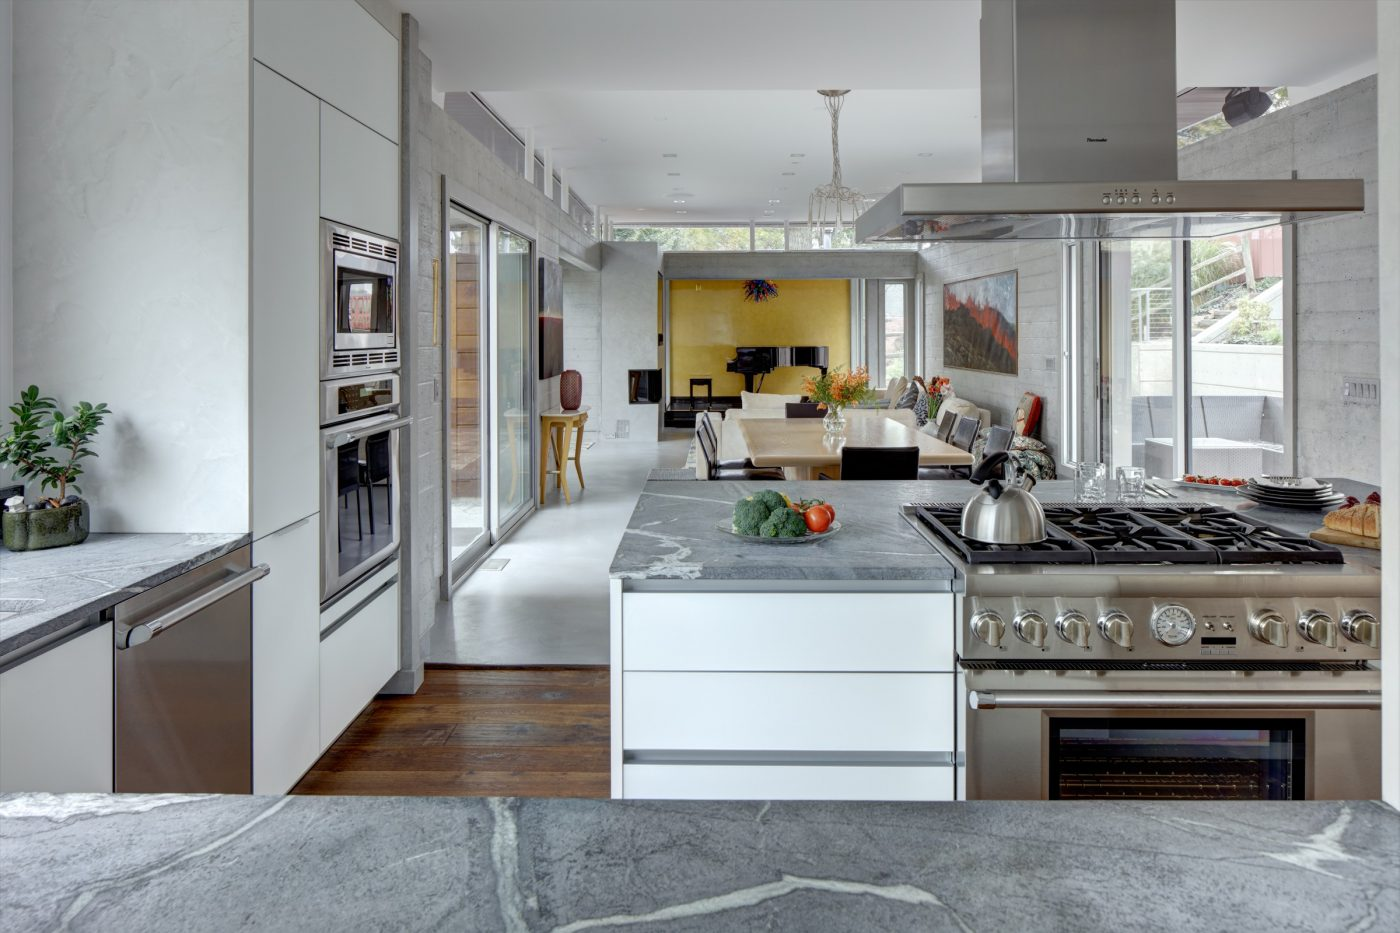 Cesar Kitchen In Edgewater Nj Cesar Nyc Kitchens Residential Design